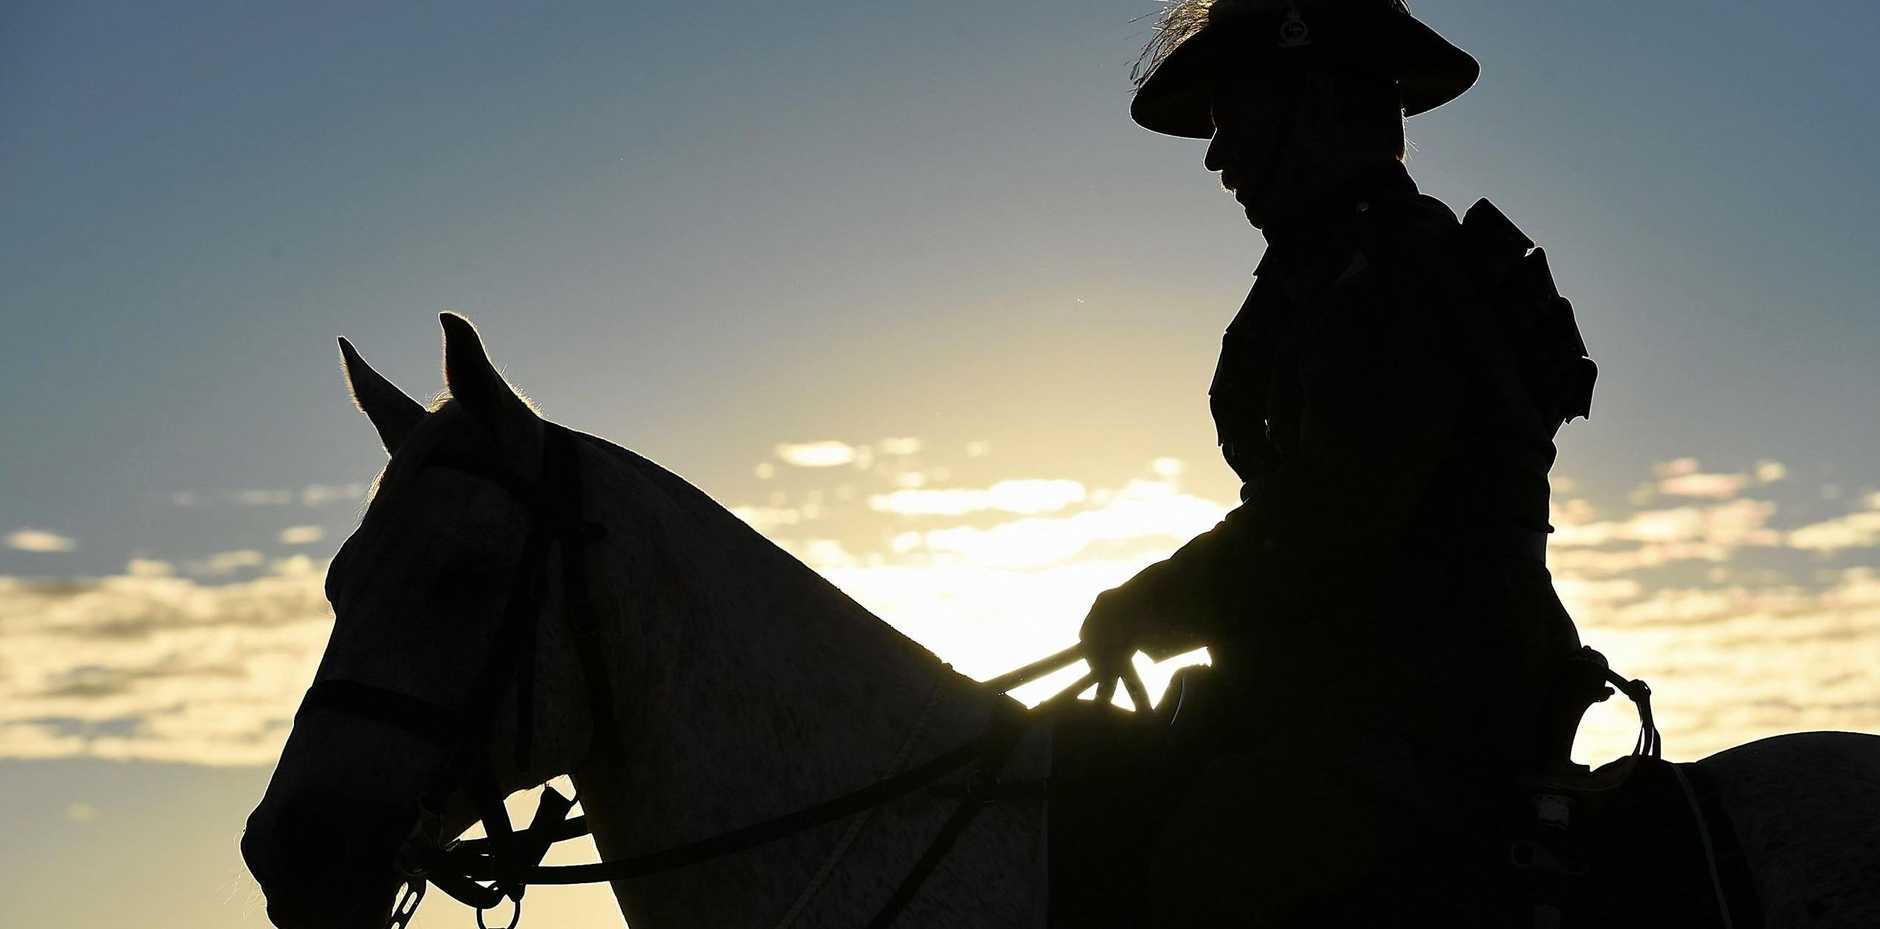 The charge of the Australian Light Horse at Beersheba  on October 31, 1917 is recognised as the last great cavalry charge.